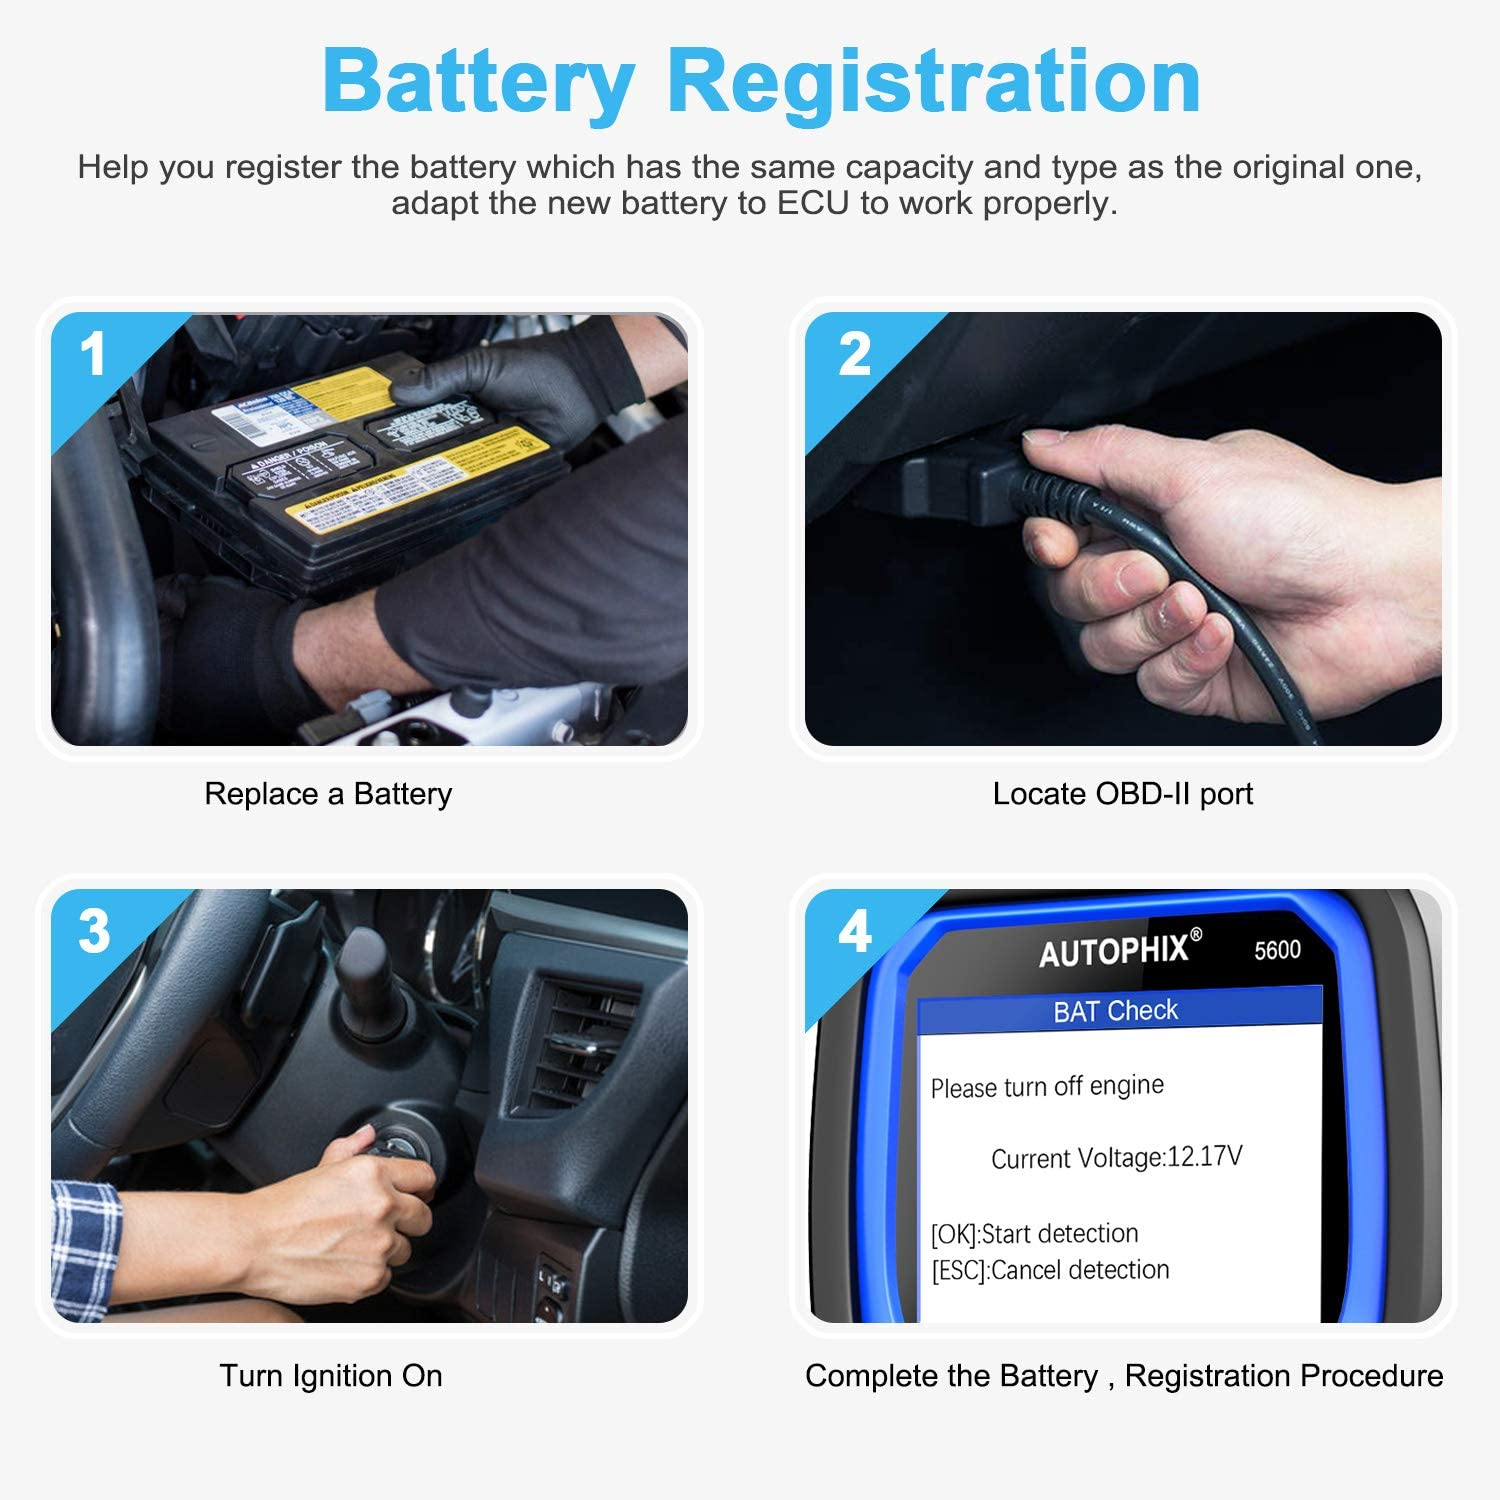 Professional Automotive OBD2 Scanner Code Reader for VW Audi Skoda Seat,5600 Multi-Systems Diagnostic Scan Tool with ABS//Transmission//BMS//PCM//EPB//TPMS//SAS//Oil Reset Battery Registration Tool